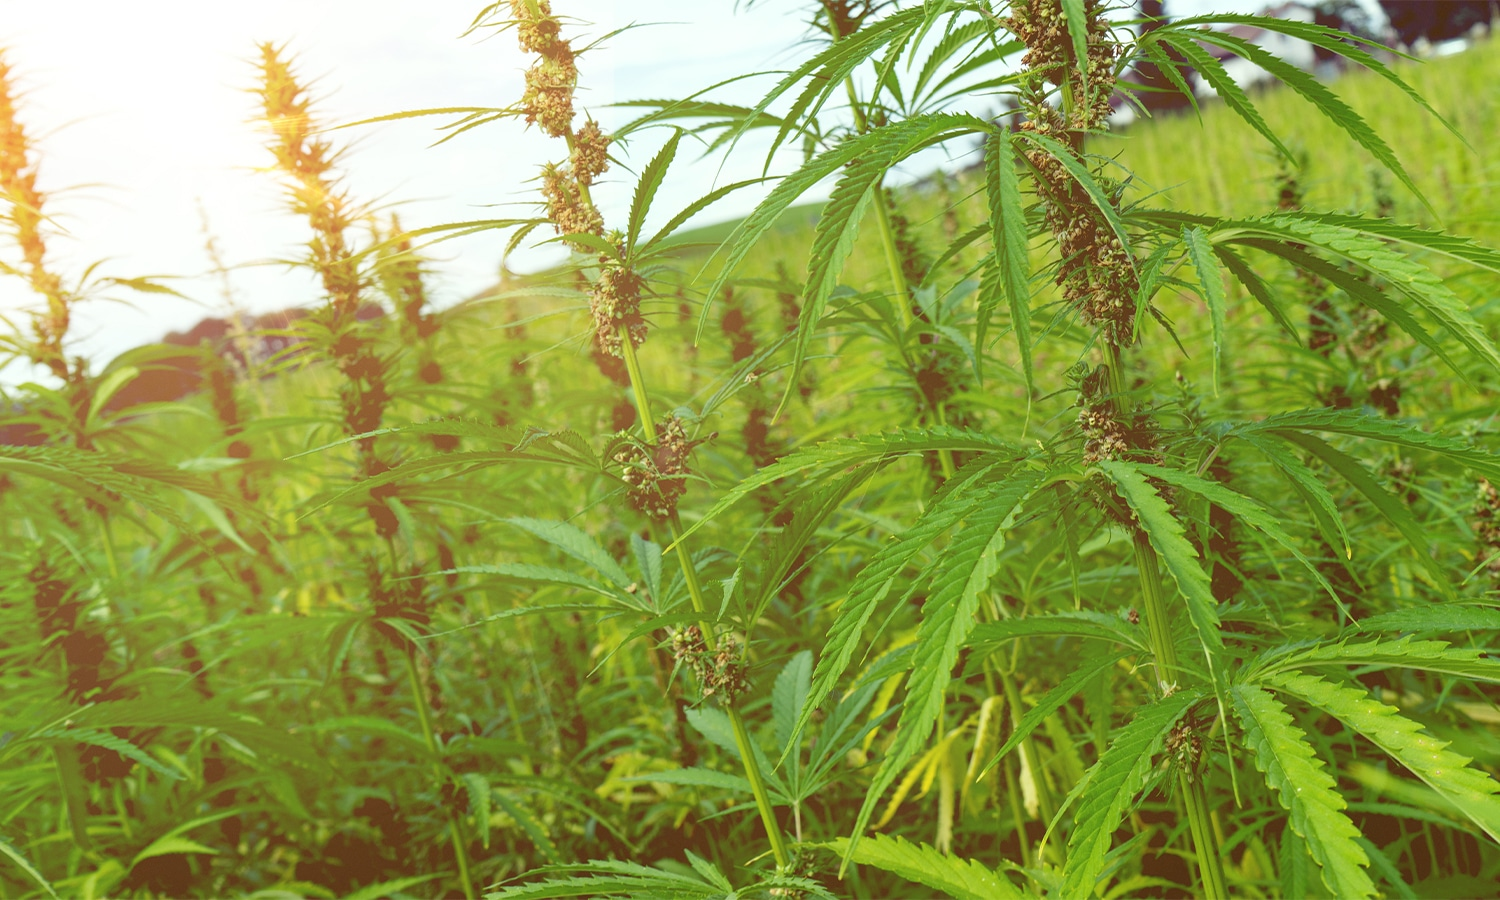 What To Look For In A Hemp Lawyer